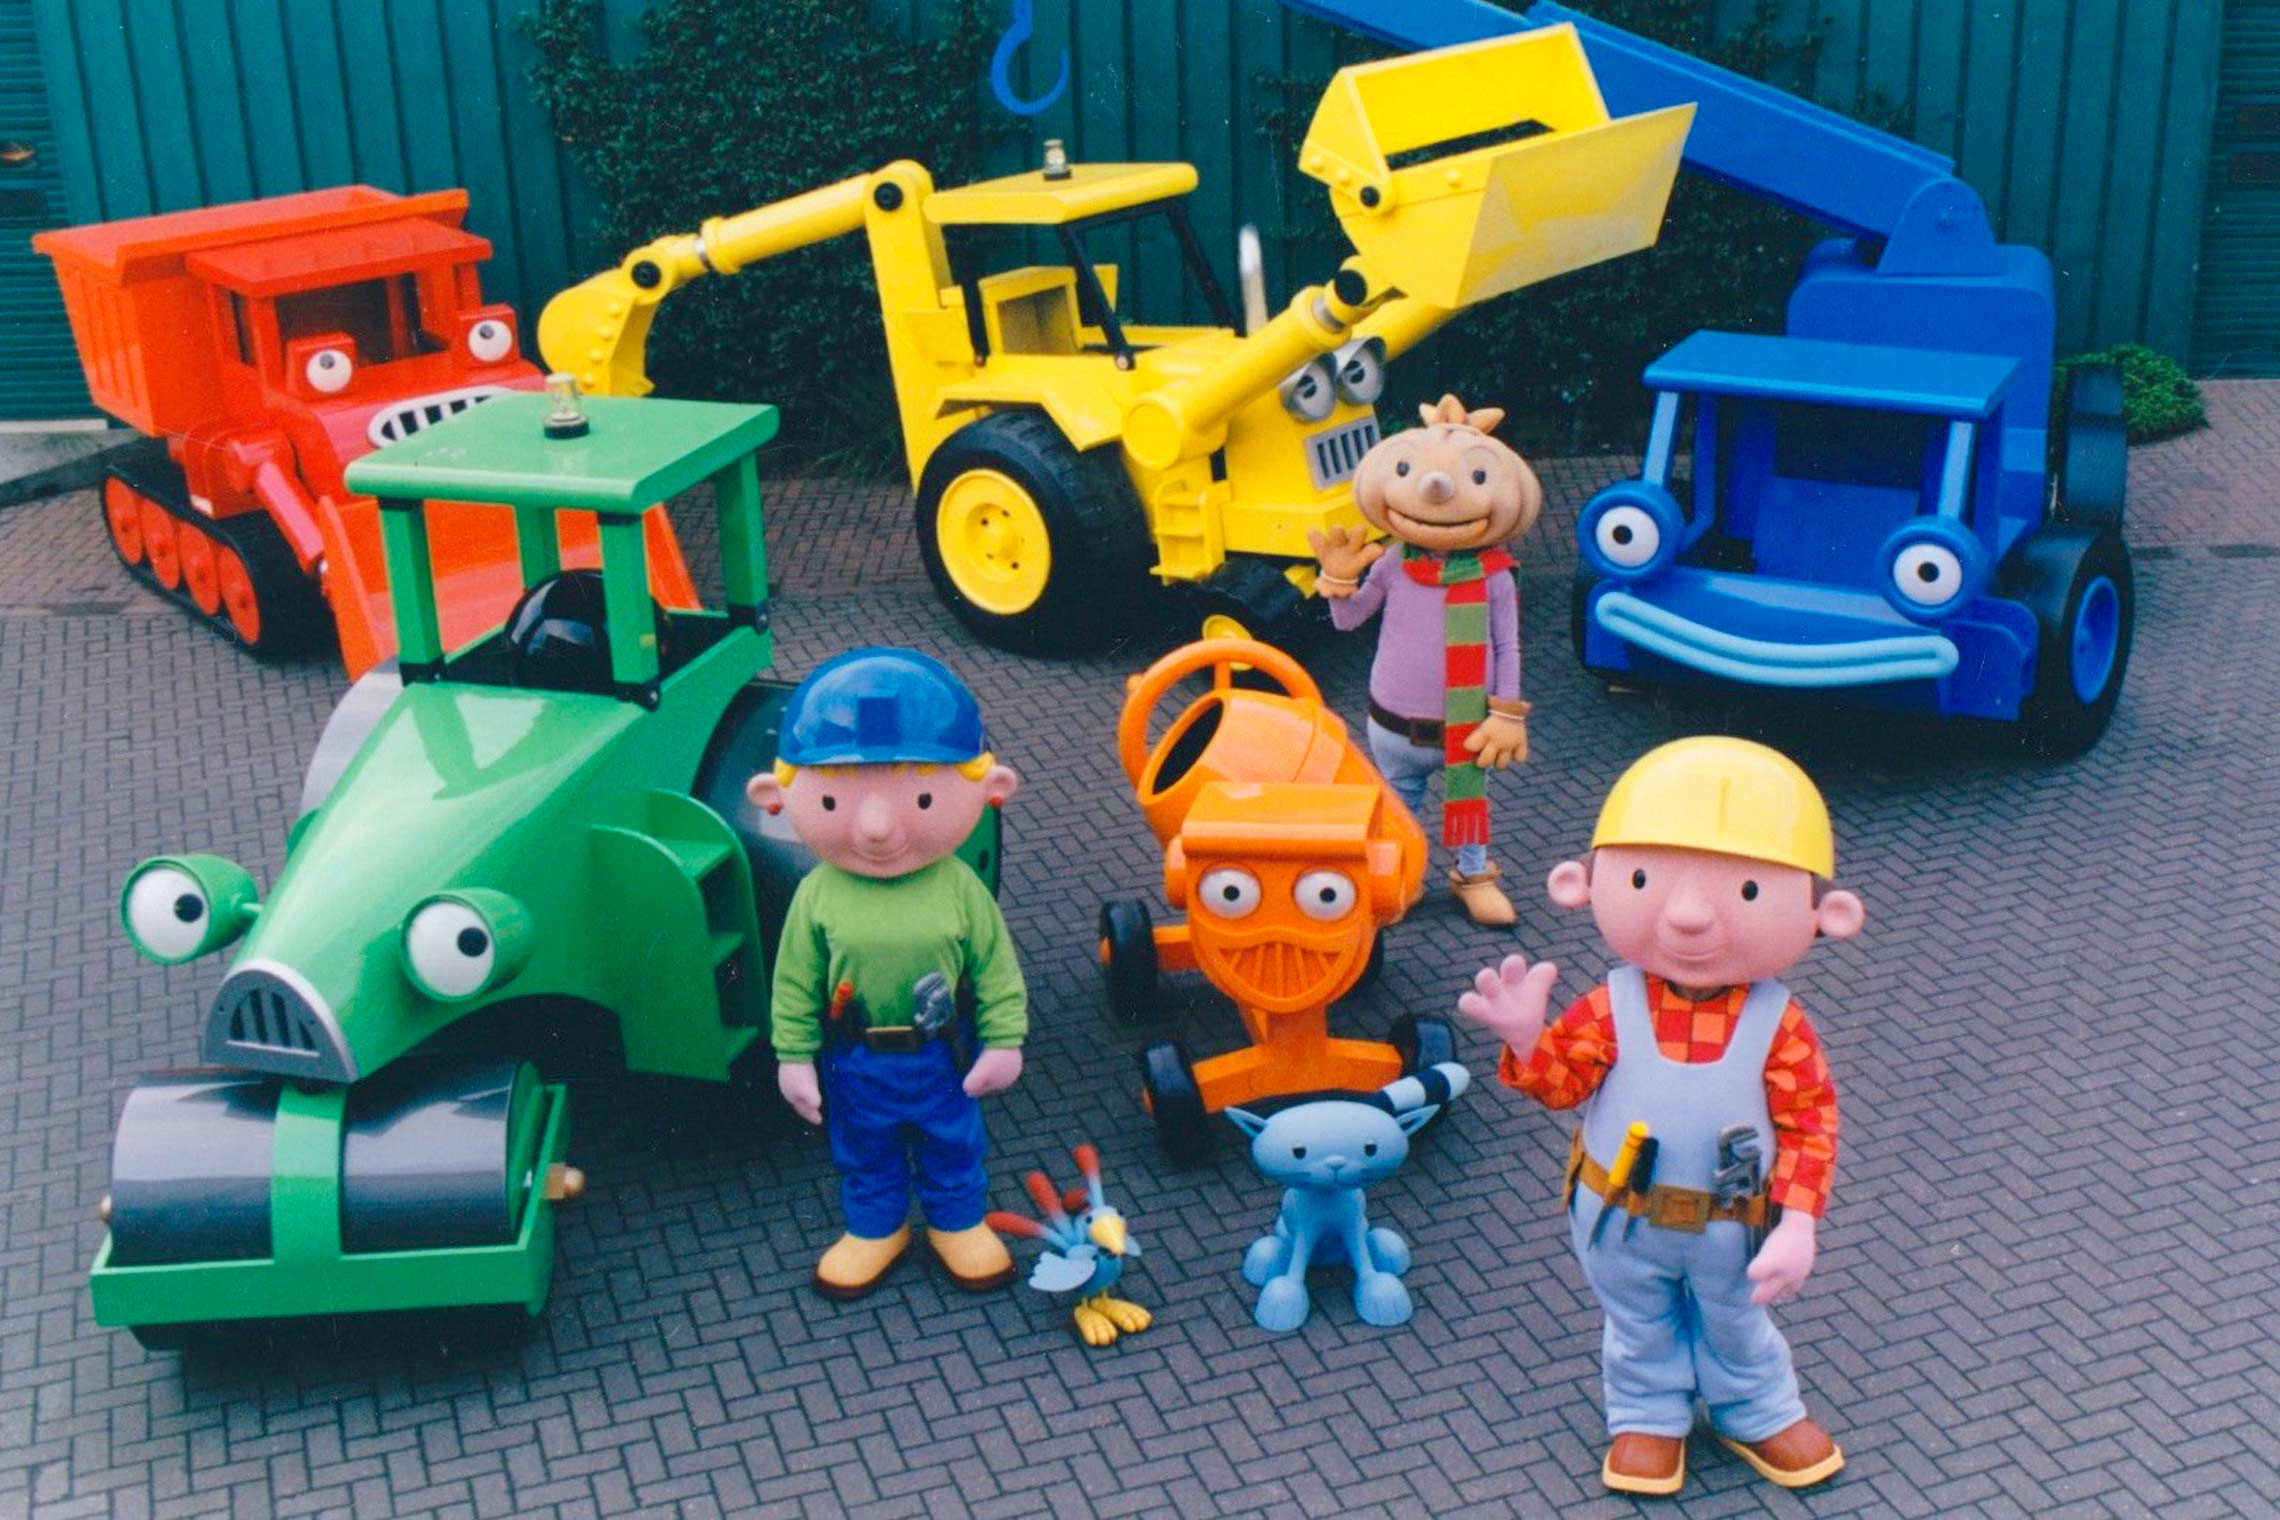 bob the builder live costumes and full sized character vehicles